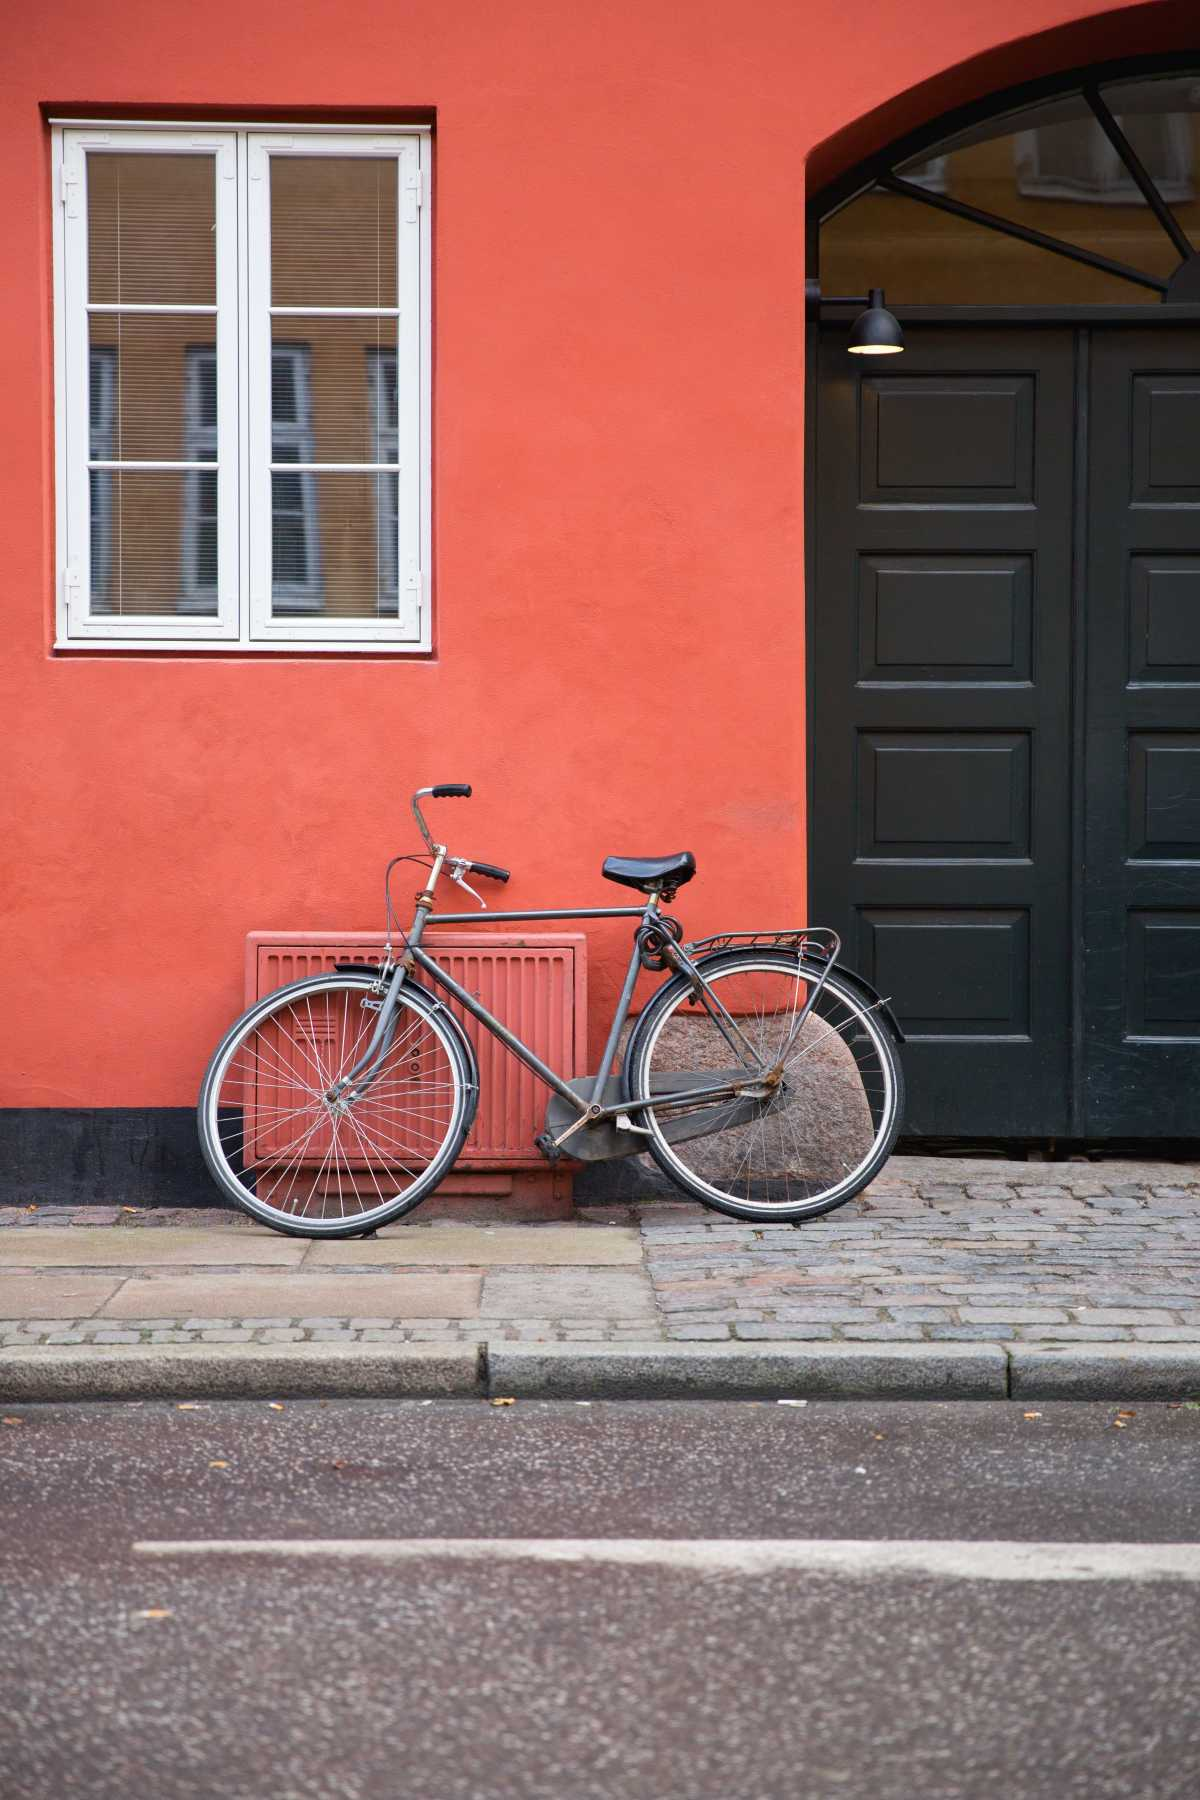 A bicycle leans against an orange stone facade